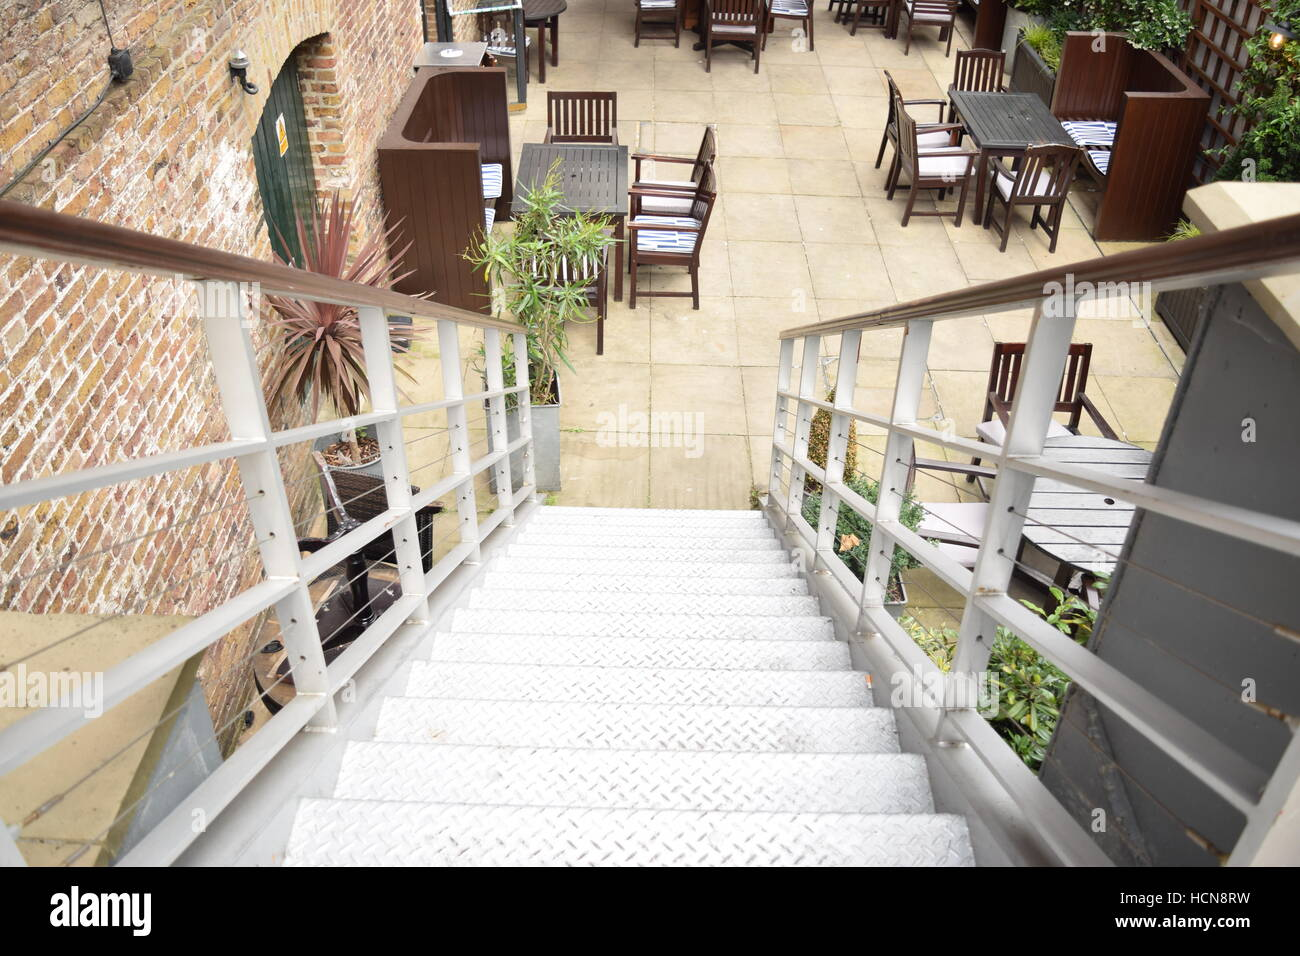 Long flight of stair leading to a outdoors restaurant seating area Stock Photo